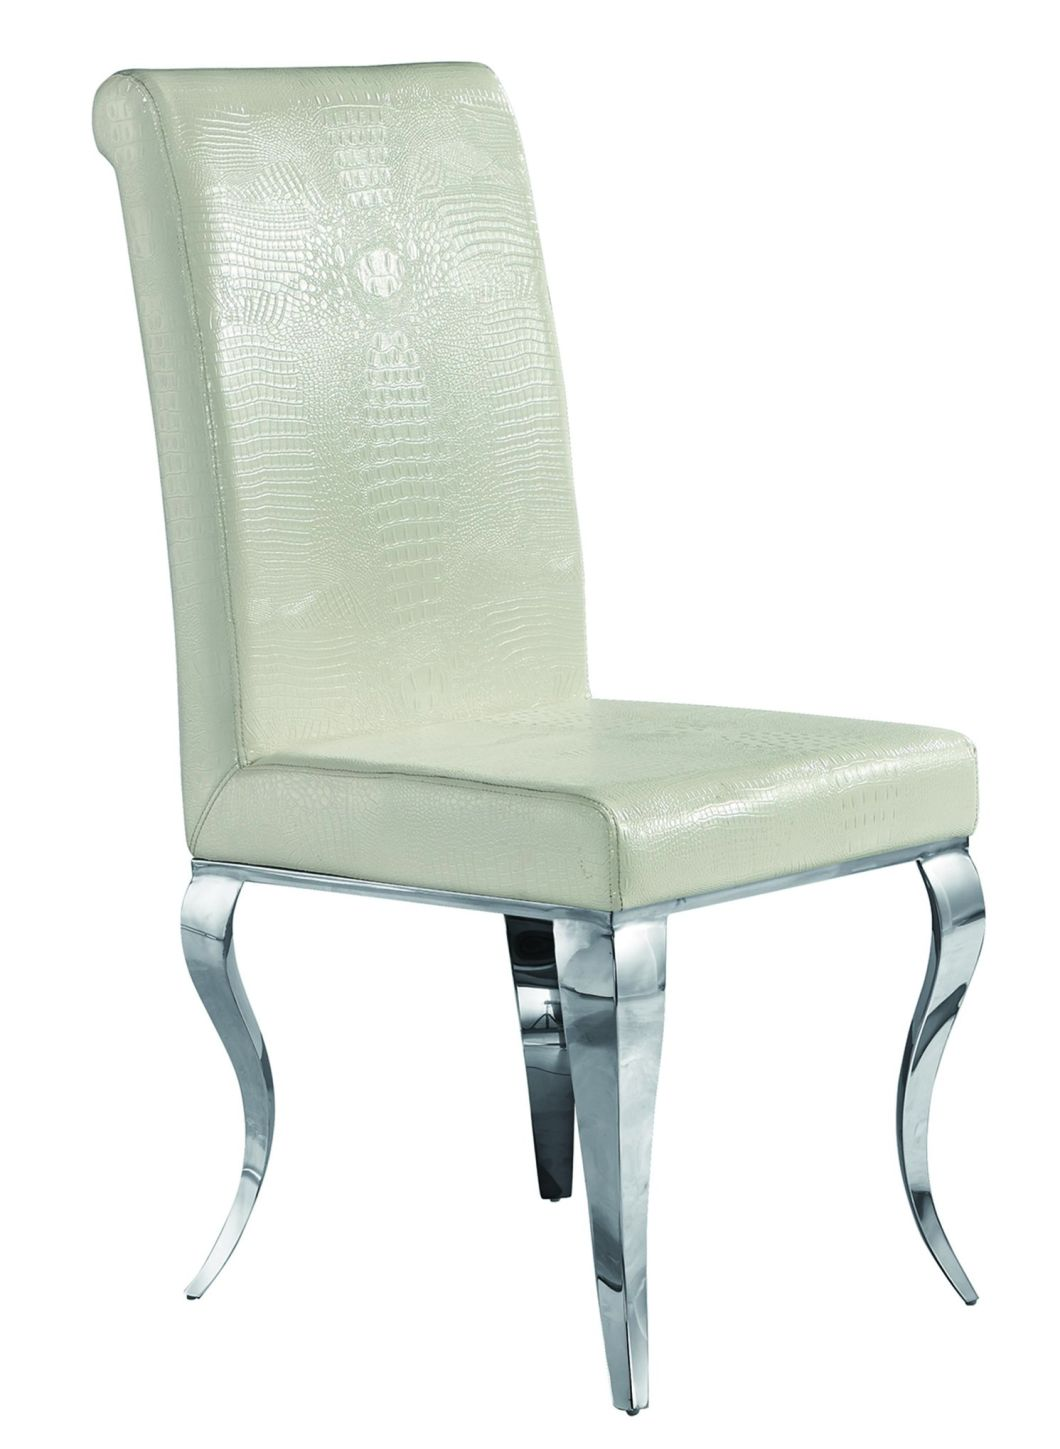 Luxury Dining Room Furniture Stainless Steel Dining Chair Wedding Chair Banquet Chair Hotel Chair